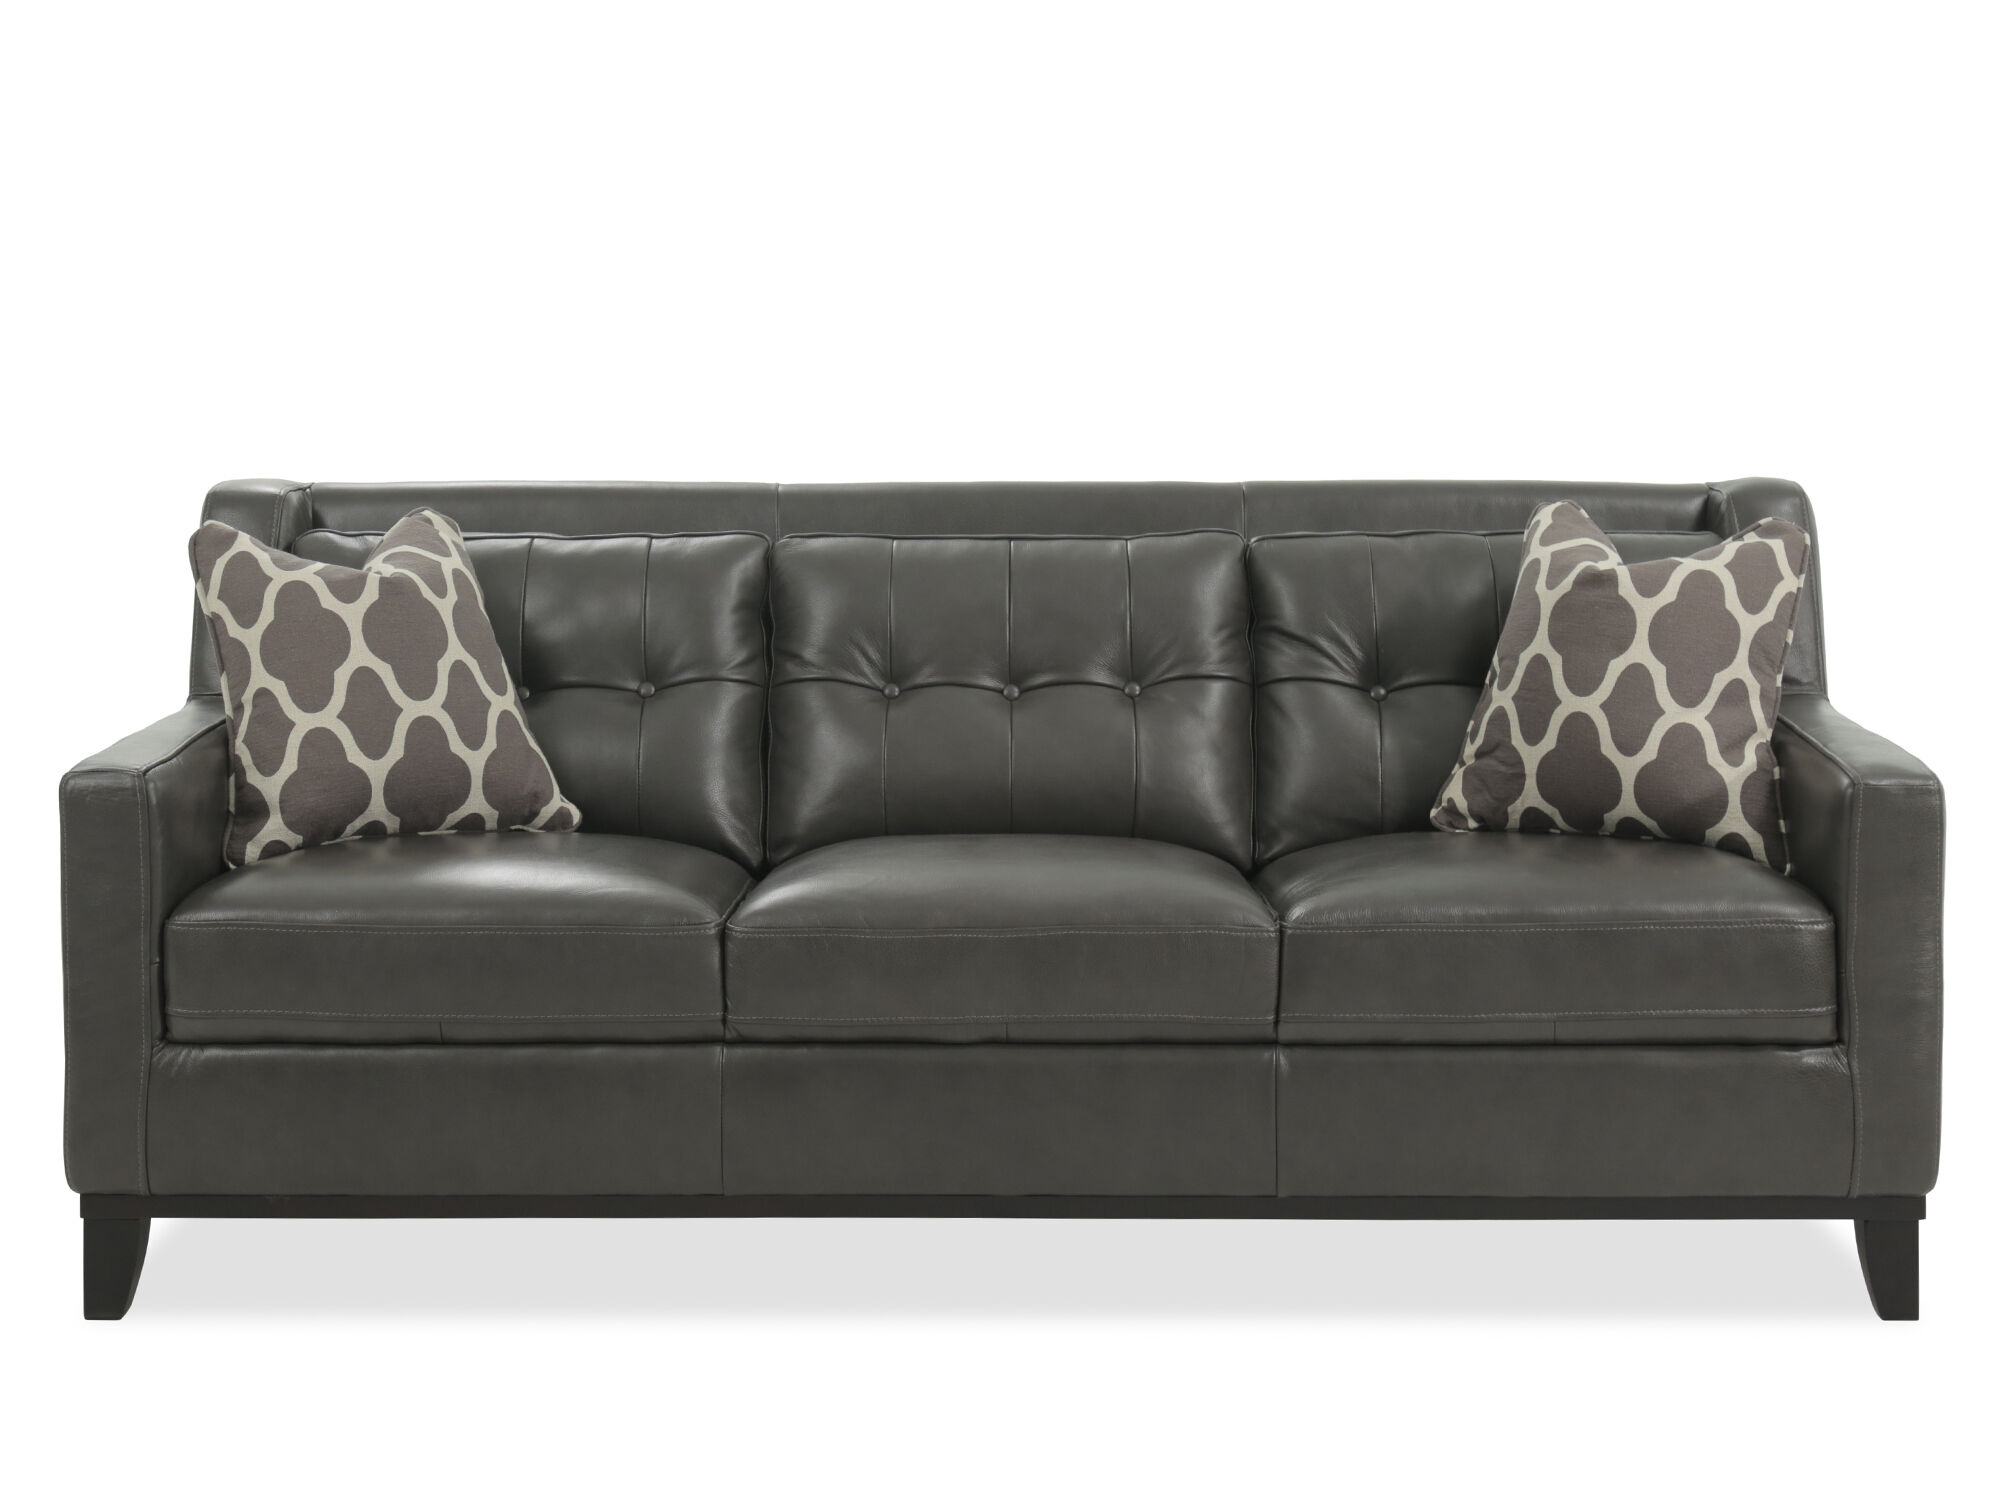 Button Tufted Leather Sofa In Gunmetal